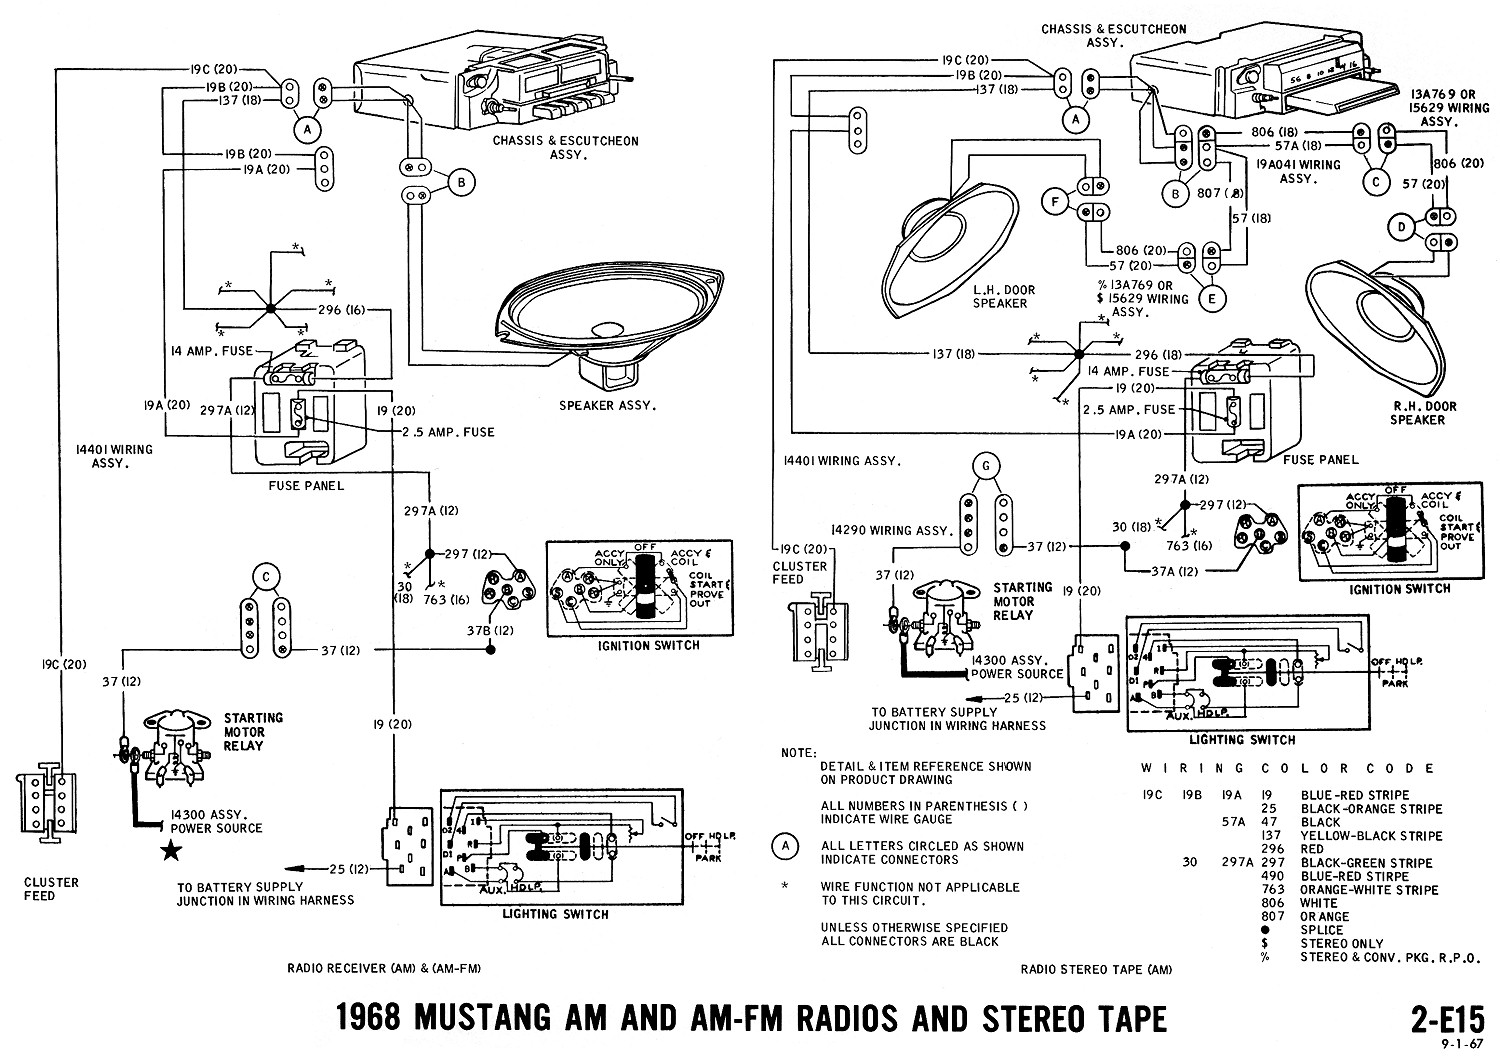 2014 mustang gt radio diagram